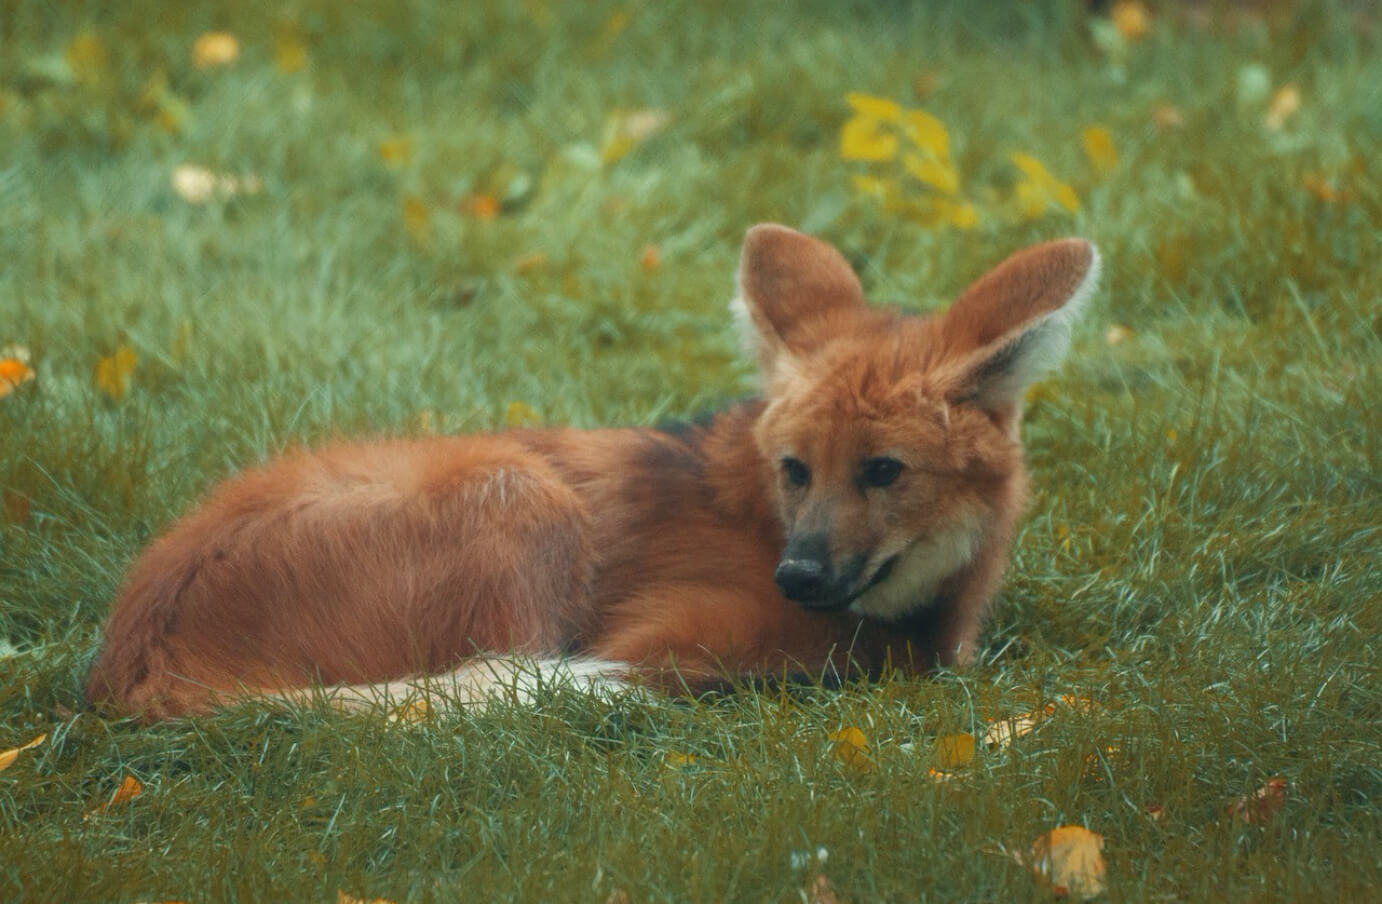 Falkland Island wolf laying in the grass